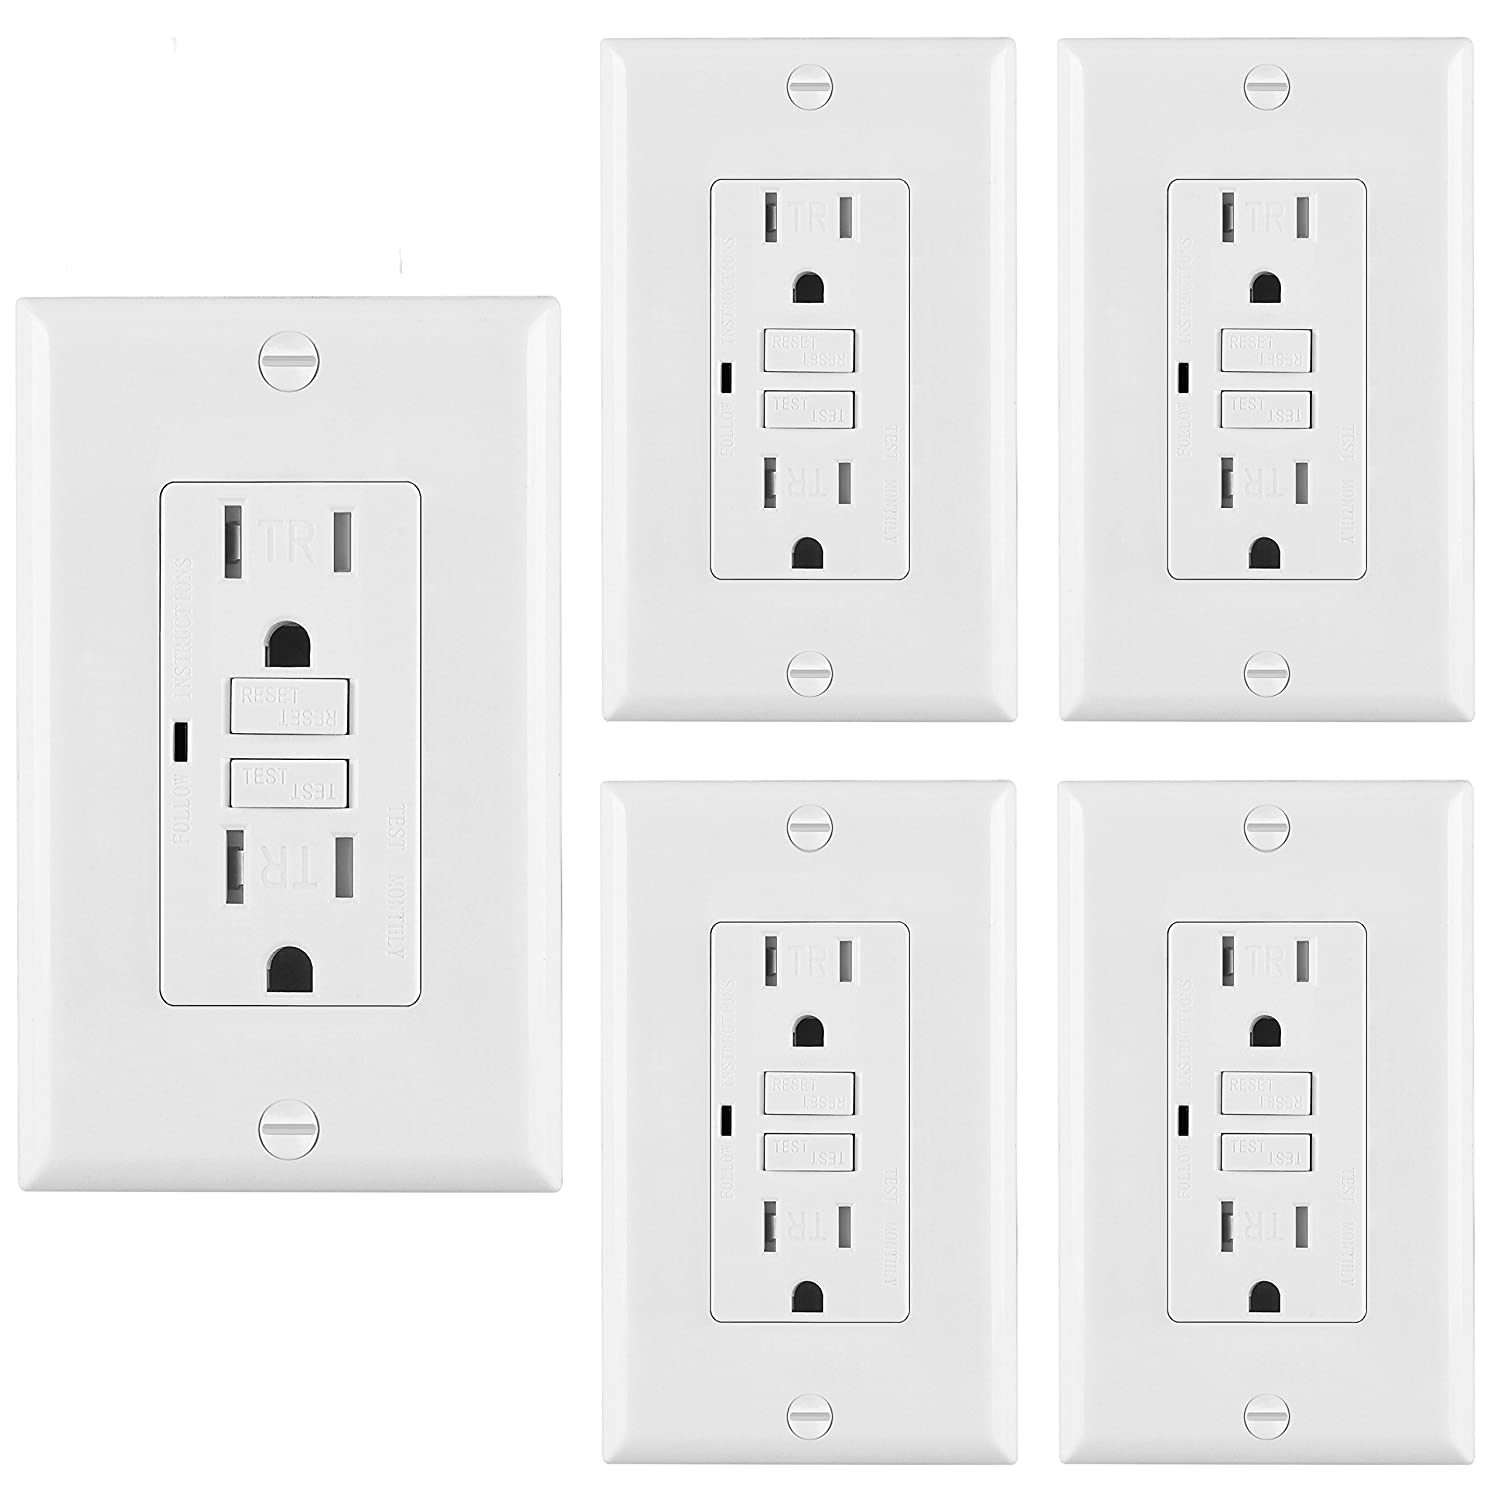 5 Pack Bestten Self Test Tamper Resistant Gfci Receptacle Outlet 15 Amp Circuit Guard White Hd With Led Power Indicator 125 Volt Decor Wall Plate Included Auto Function